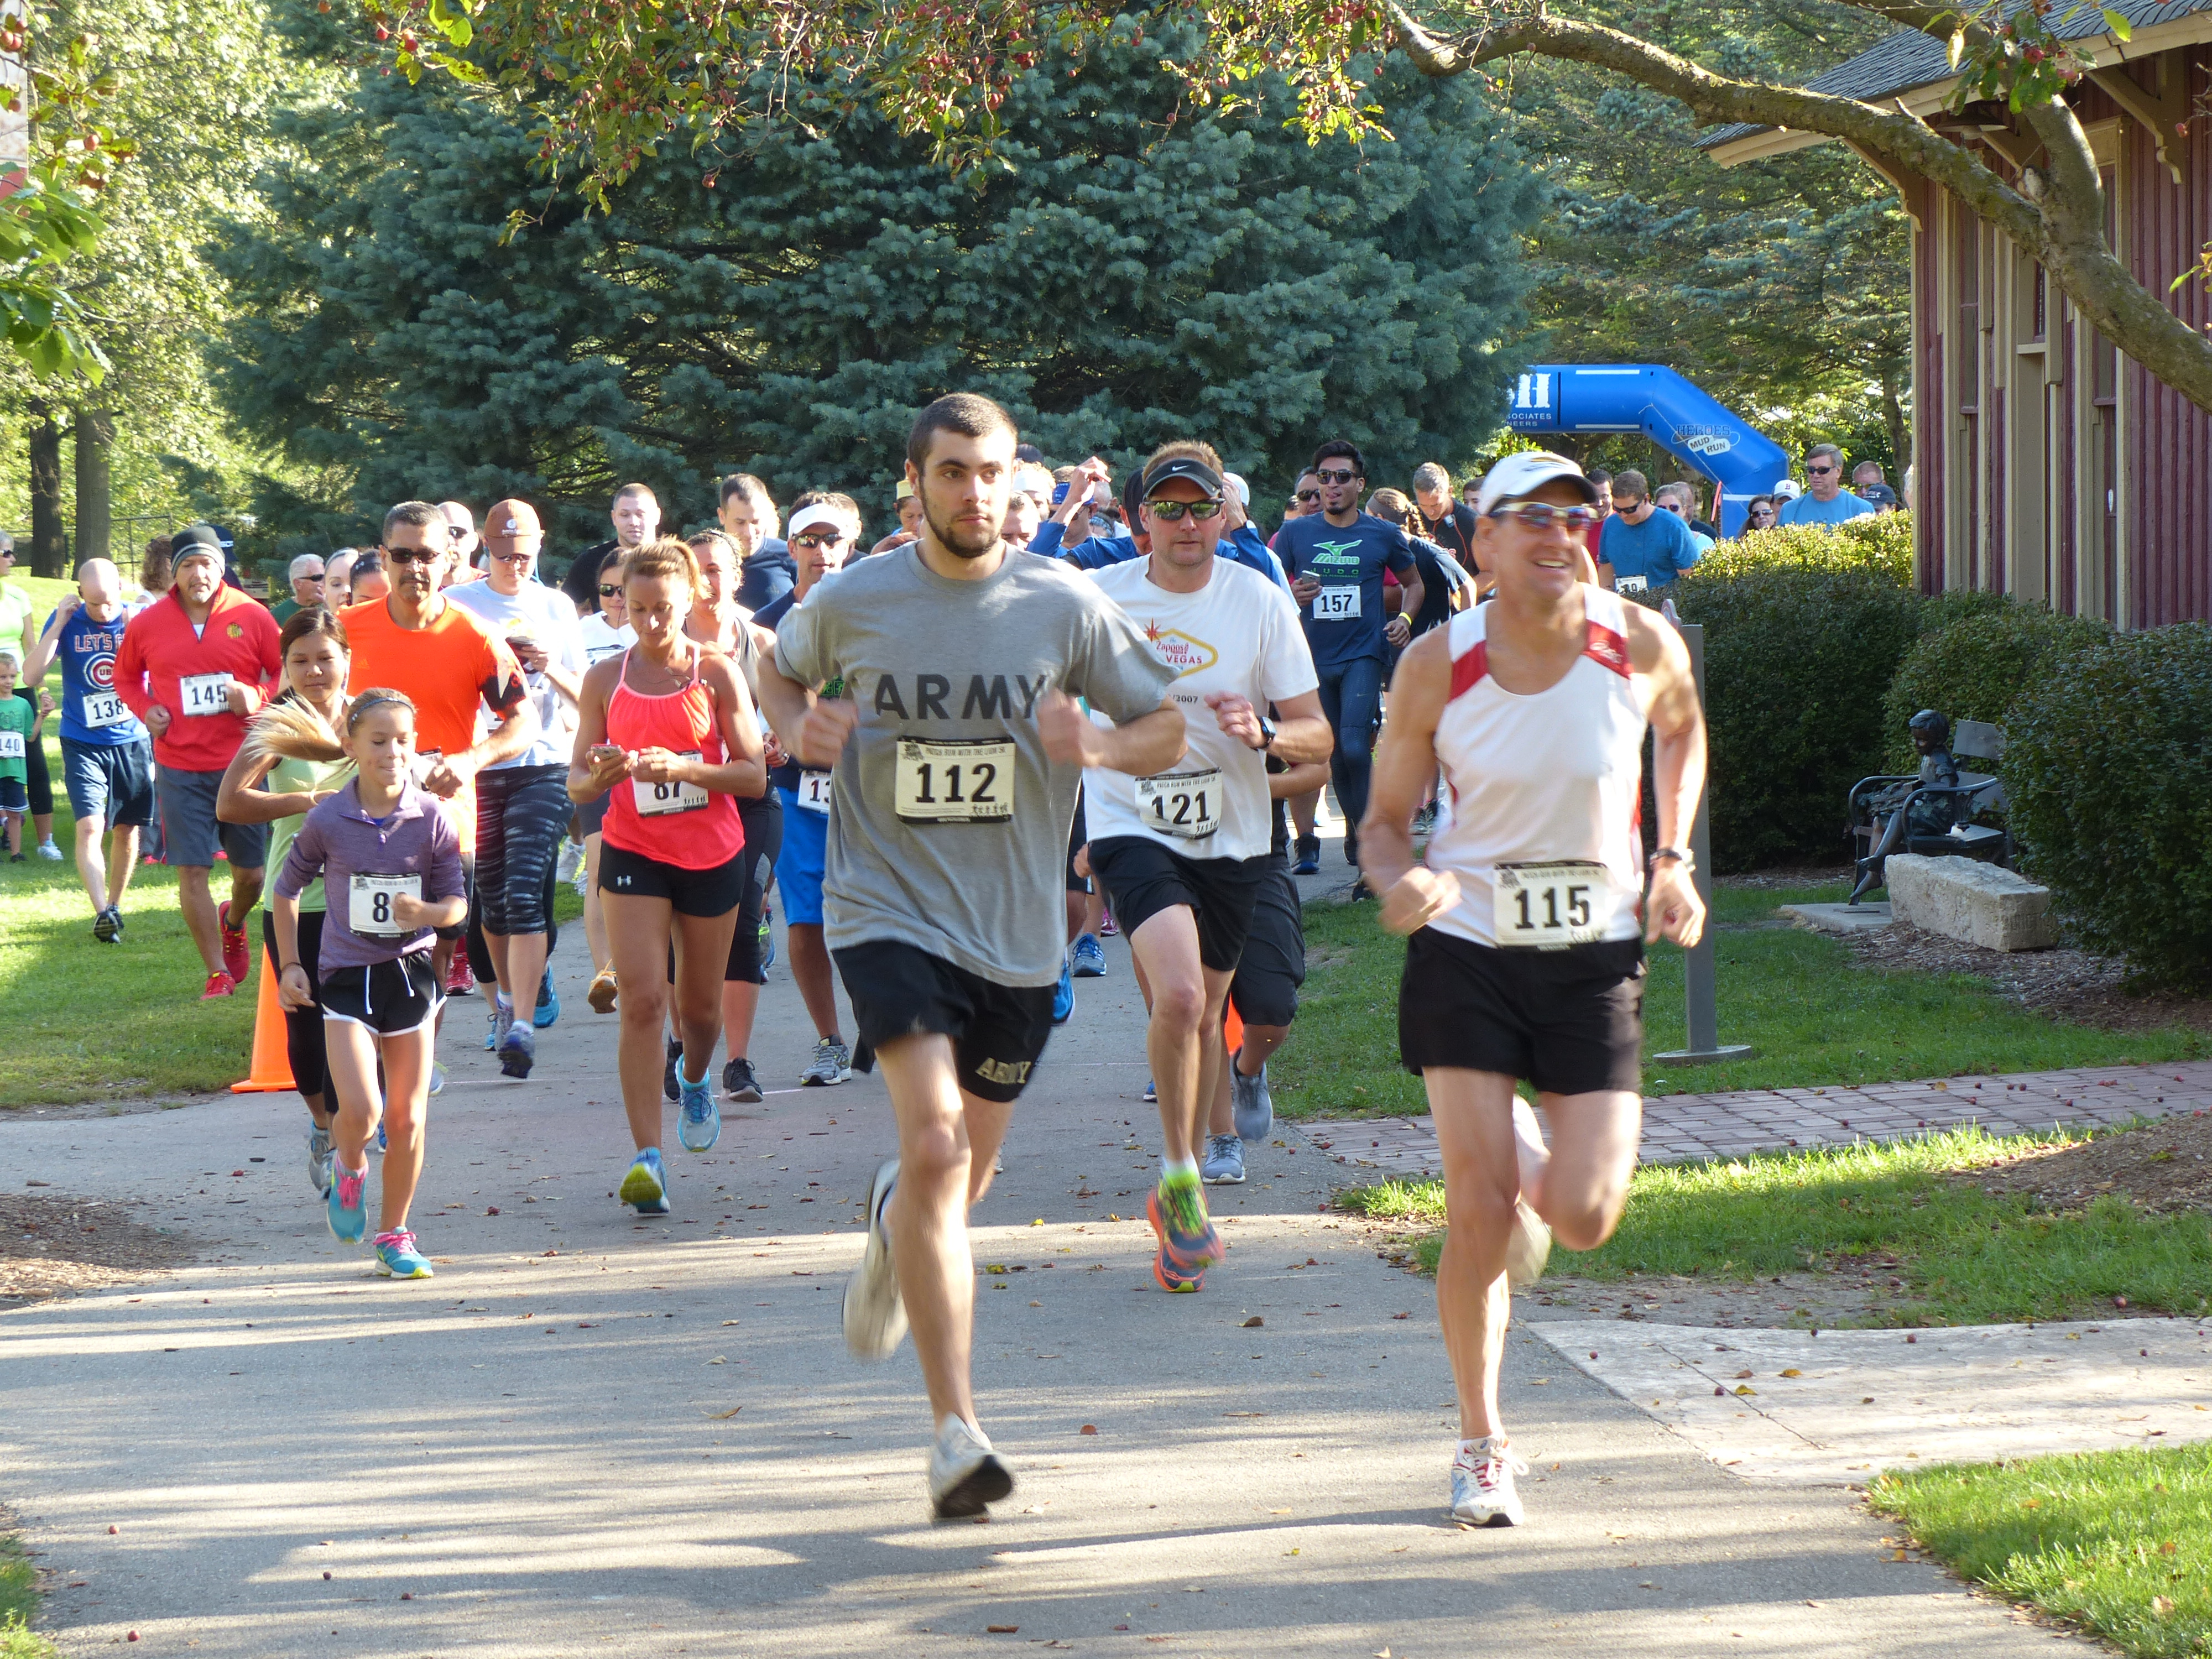 District Council 30 held its first annual PATCH Run with the Lion 5K at Blackberry Farm in Aurora, Illinois.